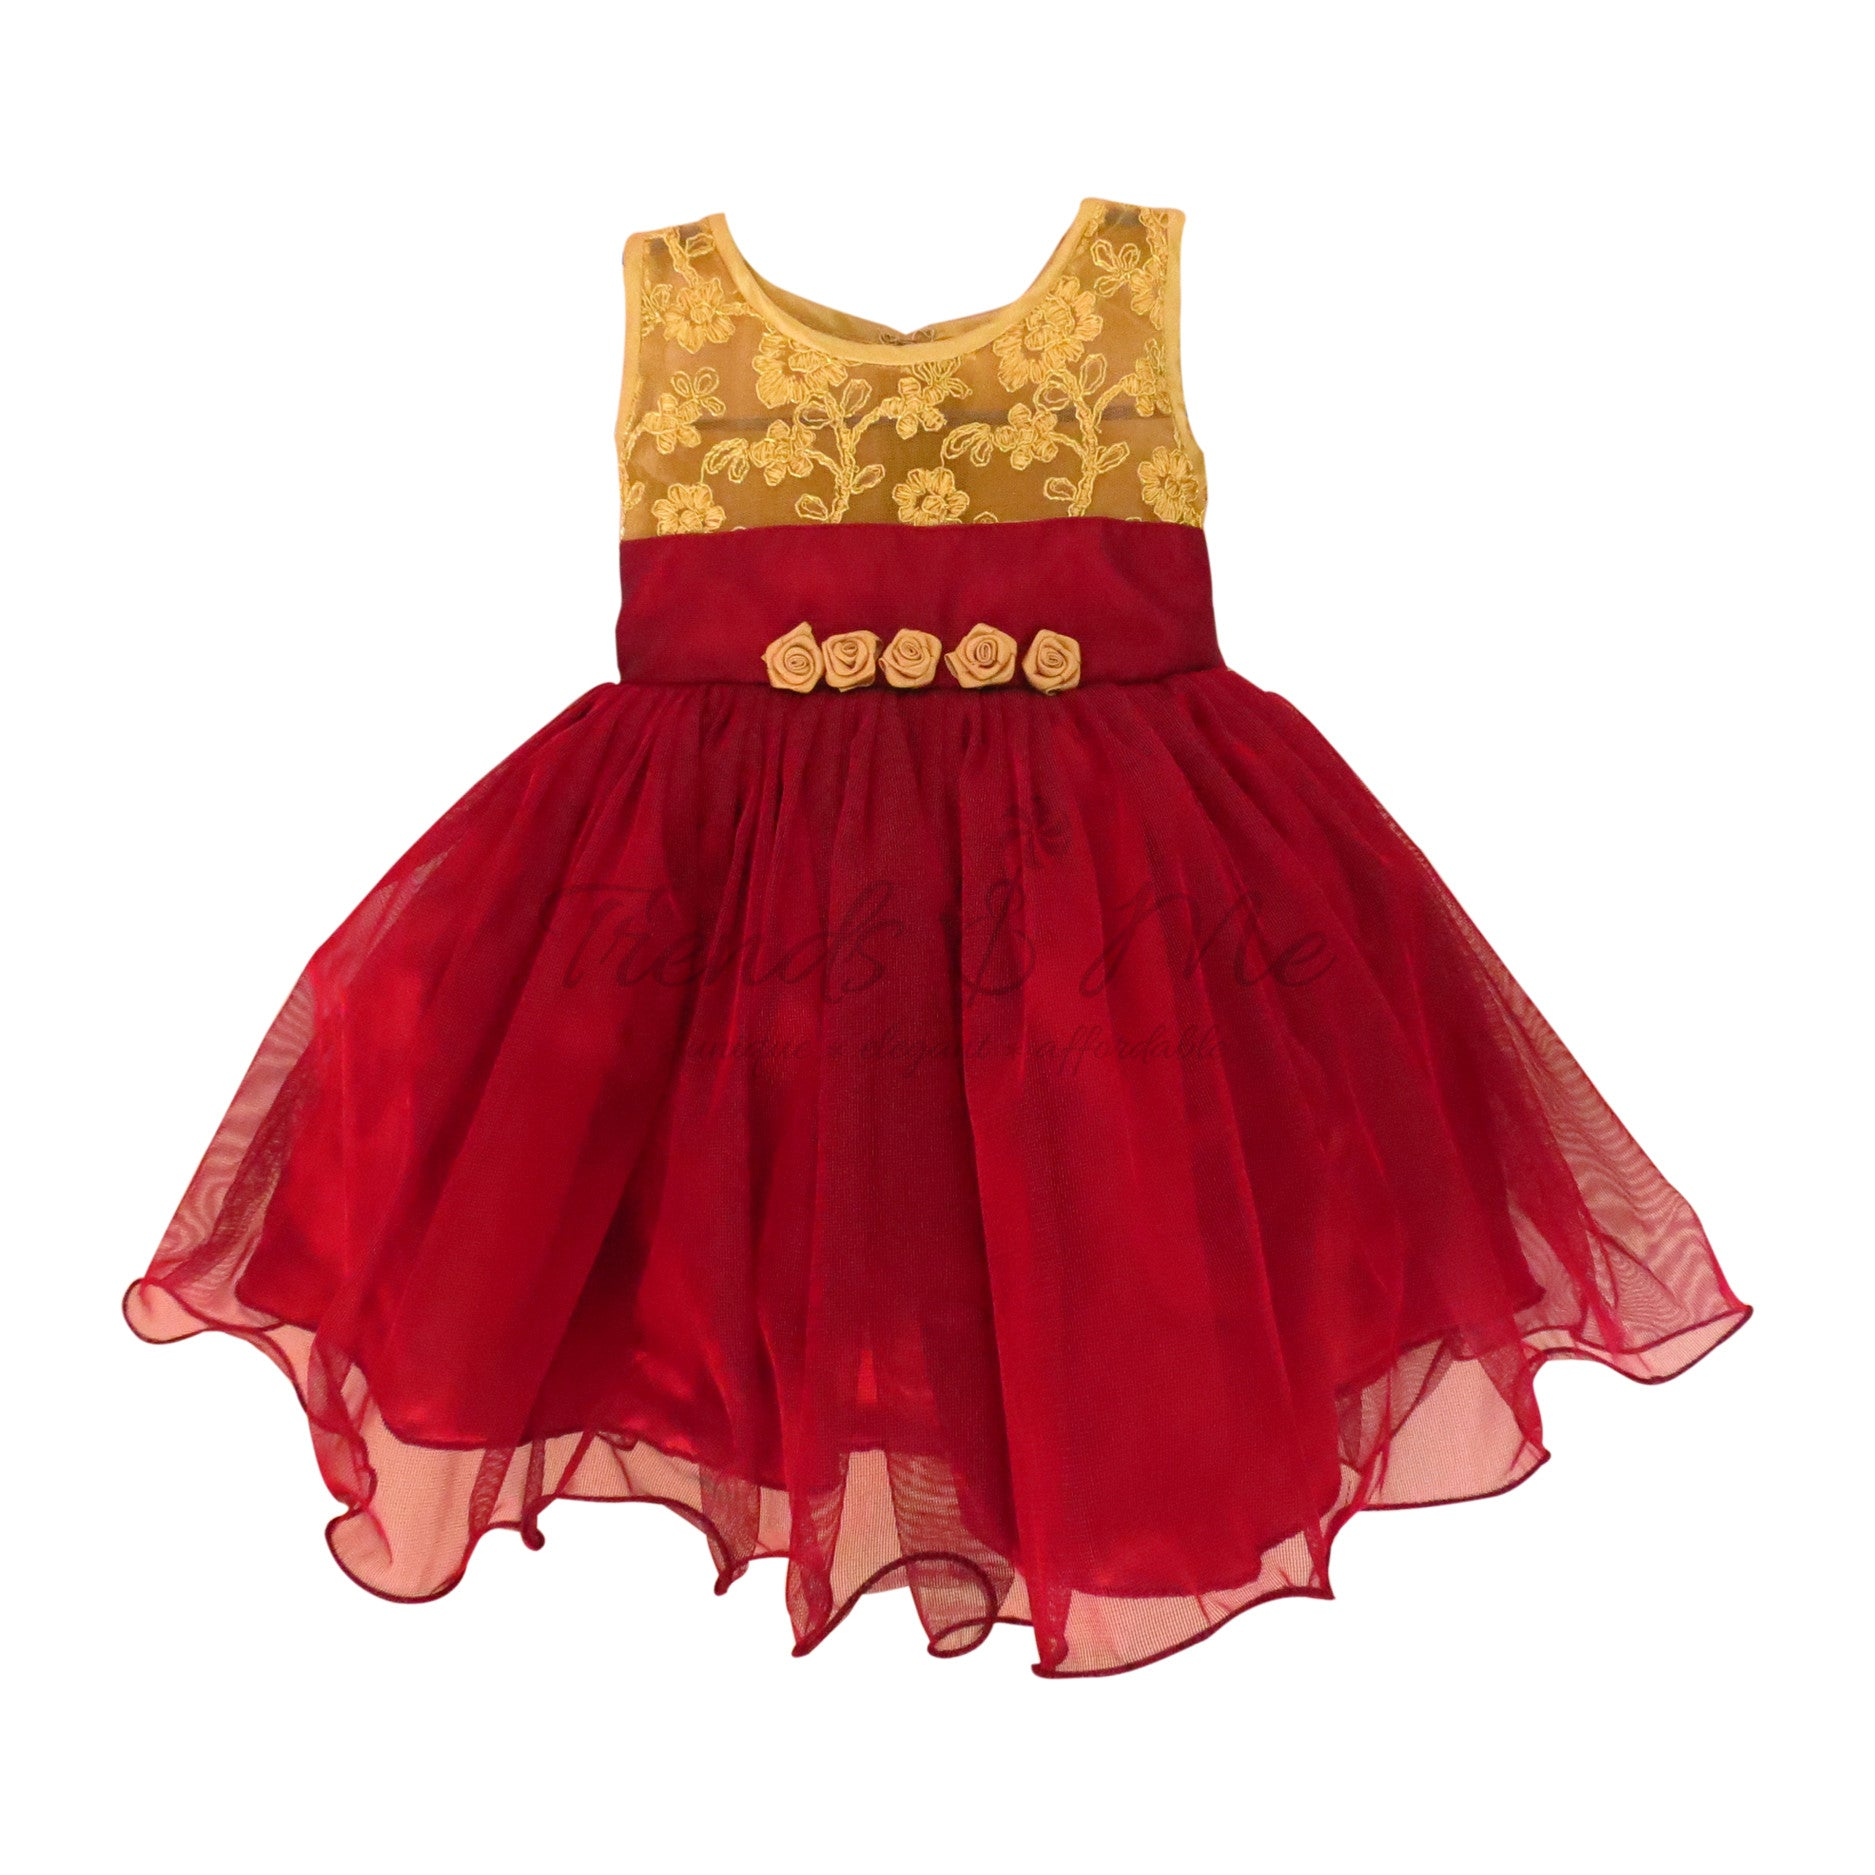 de4934e84 Golden Brocade Yoke with Wine Red Tulle Skirt - Trends and Me